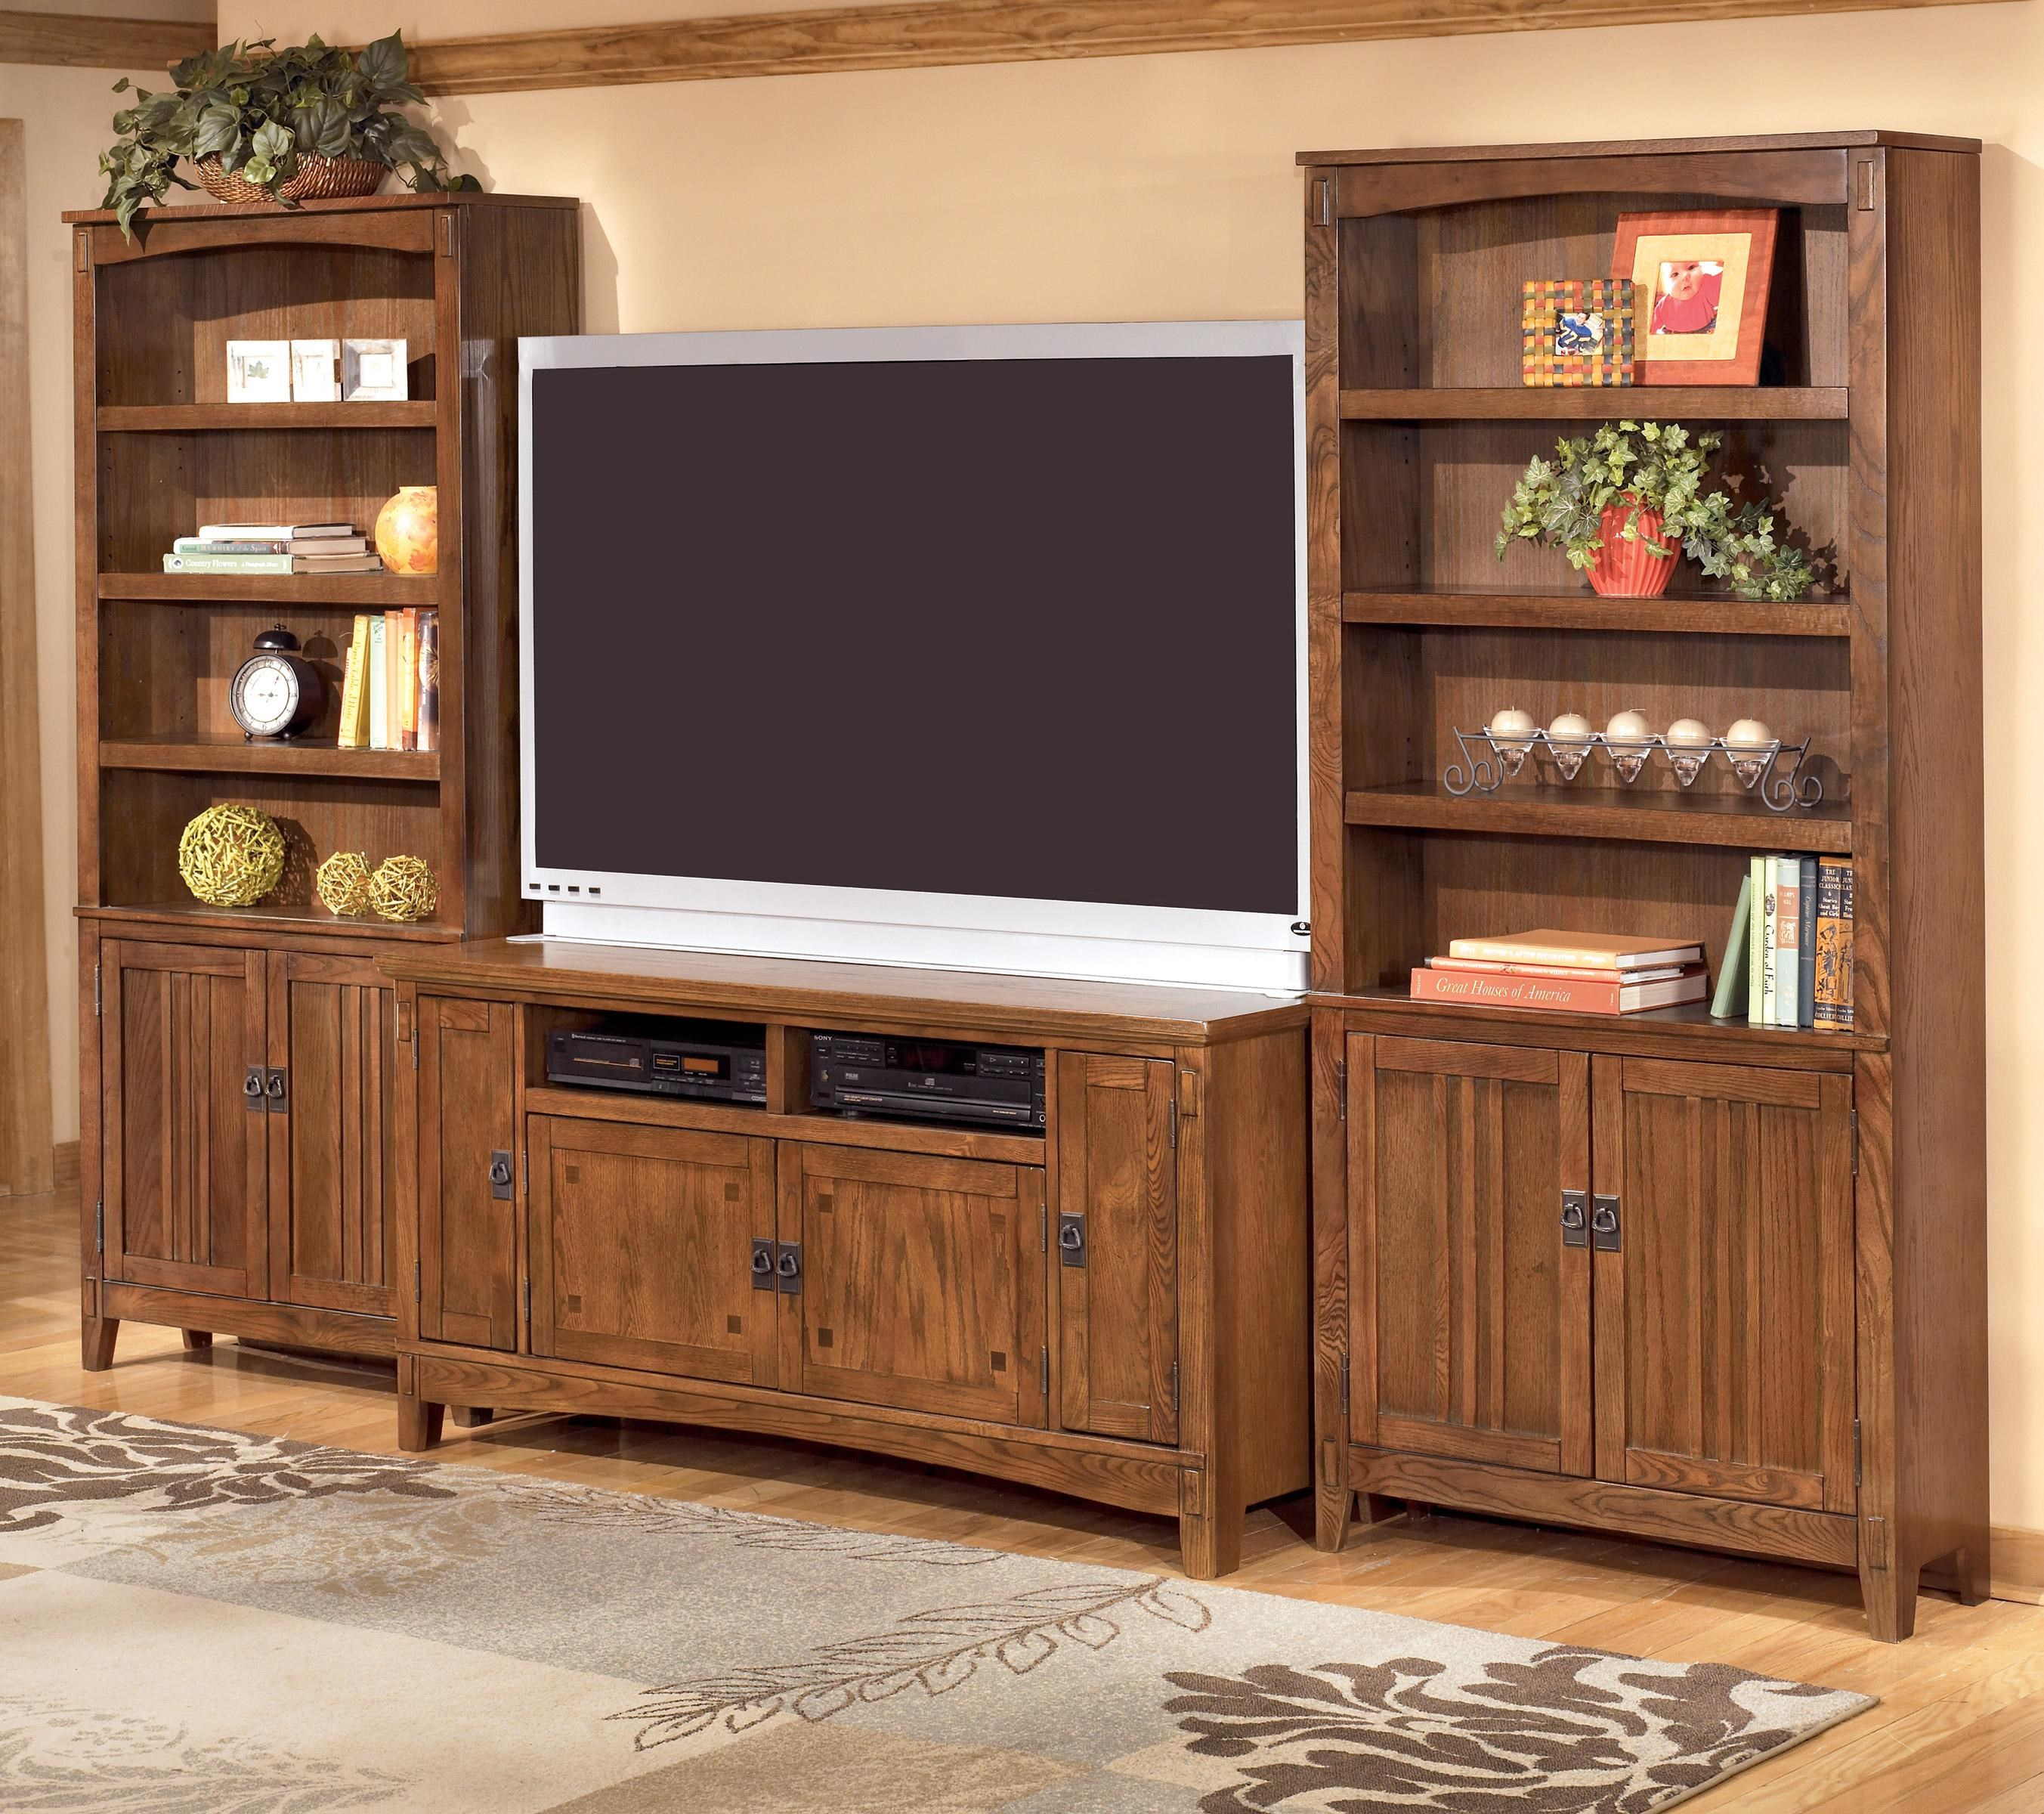 Ashley Furniture Cross Island 60 Inch Tv Stand Amp 2 Large Door Bookcases Suburban Furniture